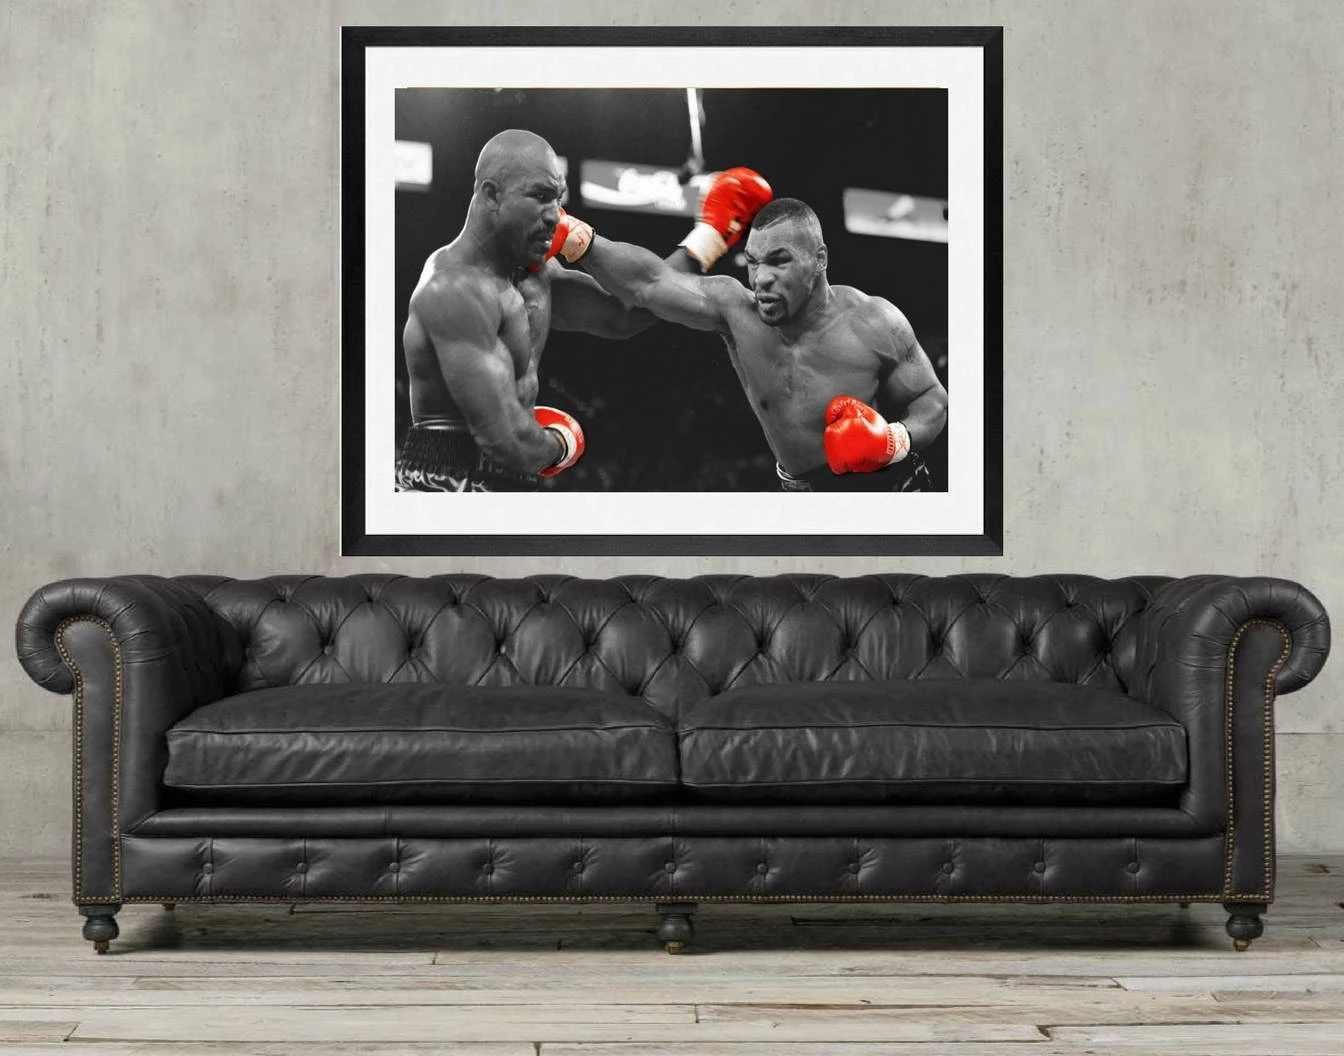 Mike Tyson Framed Art Poster Holyfield Boxing Framed Art Decor Framed Art Poster Framed Wall Art Wall Art Prints